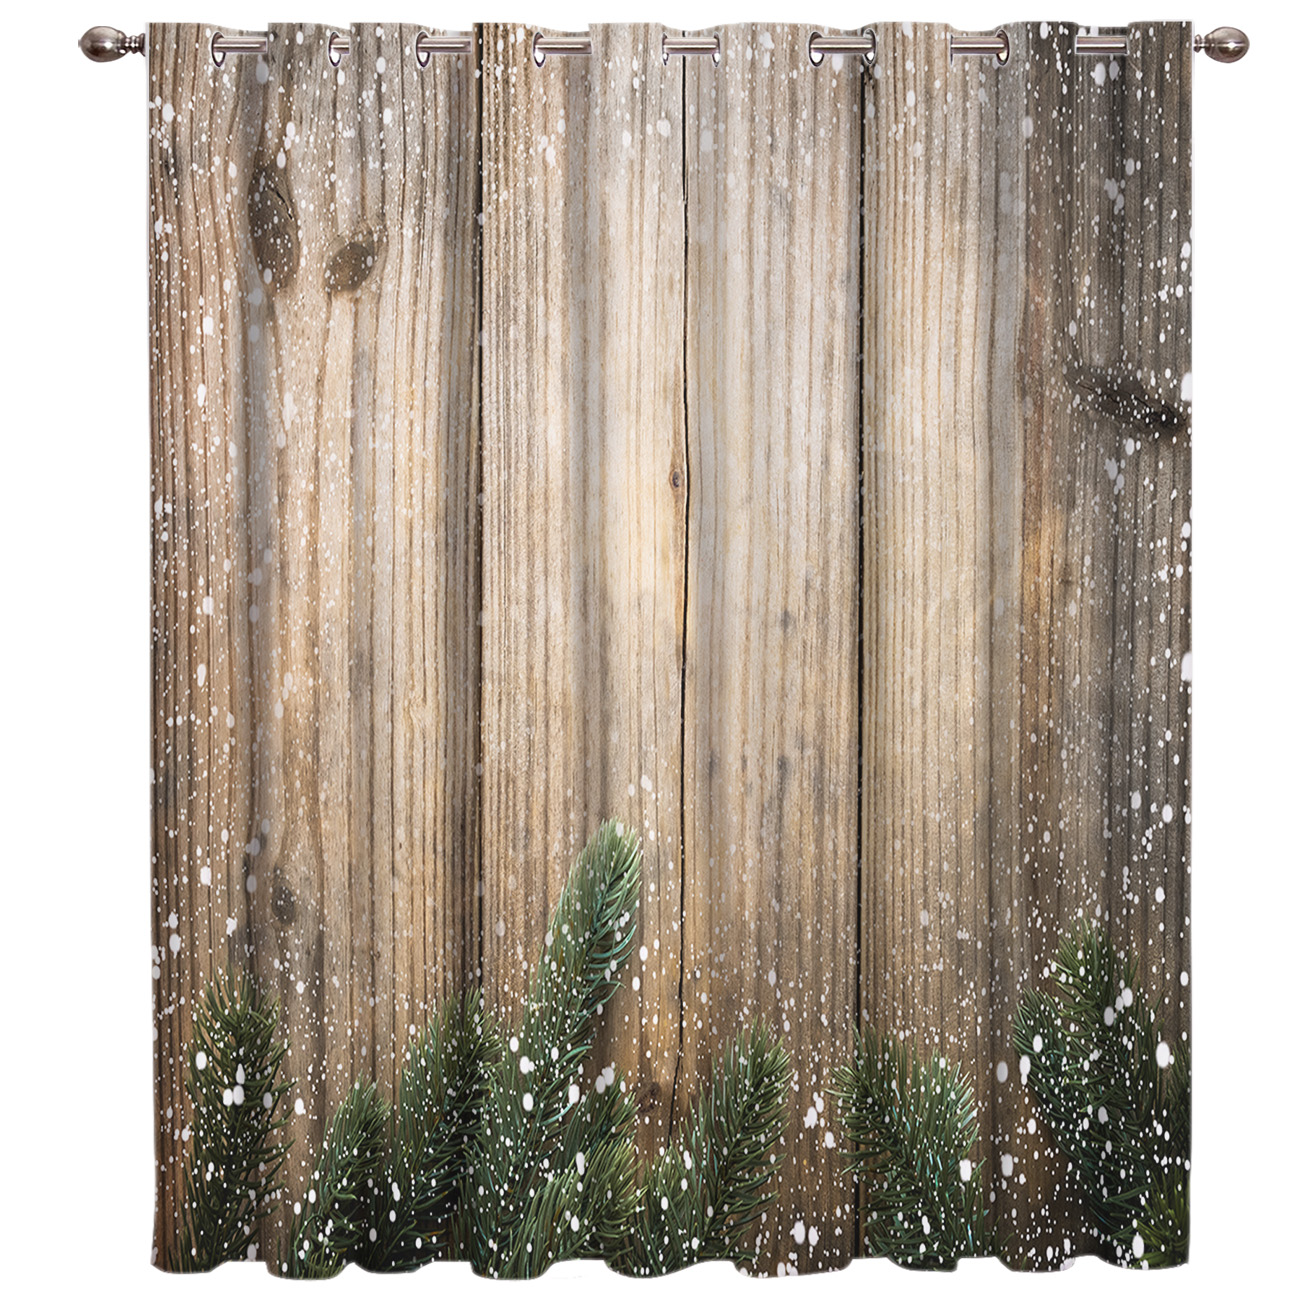 Retro Wooden Door Merry Christams Room Curtains Large Window Blackout Kitchen Outdoor Fabric Drapes Decor Kids Window Treatment